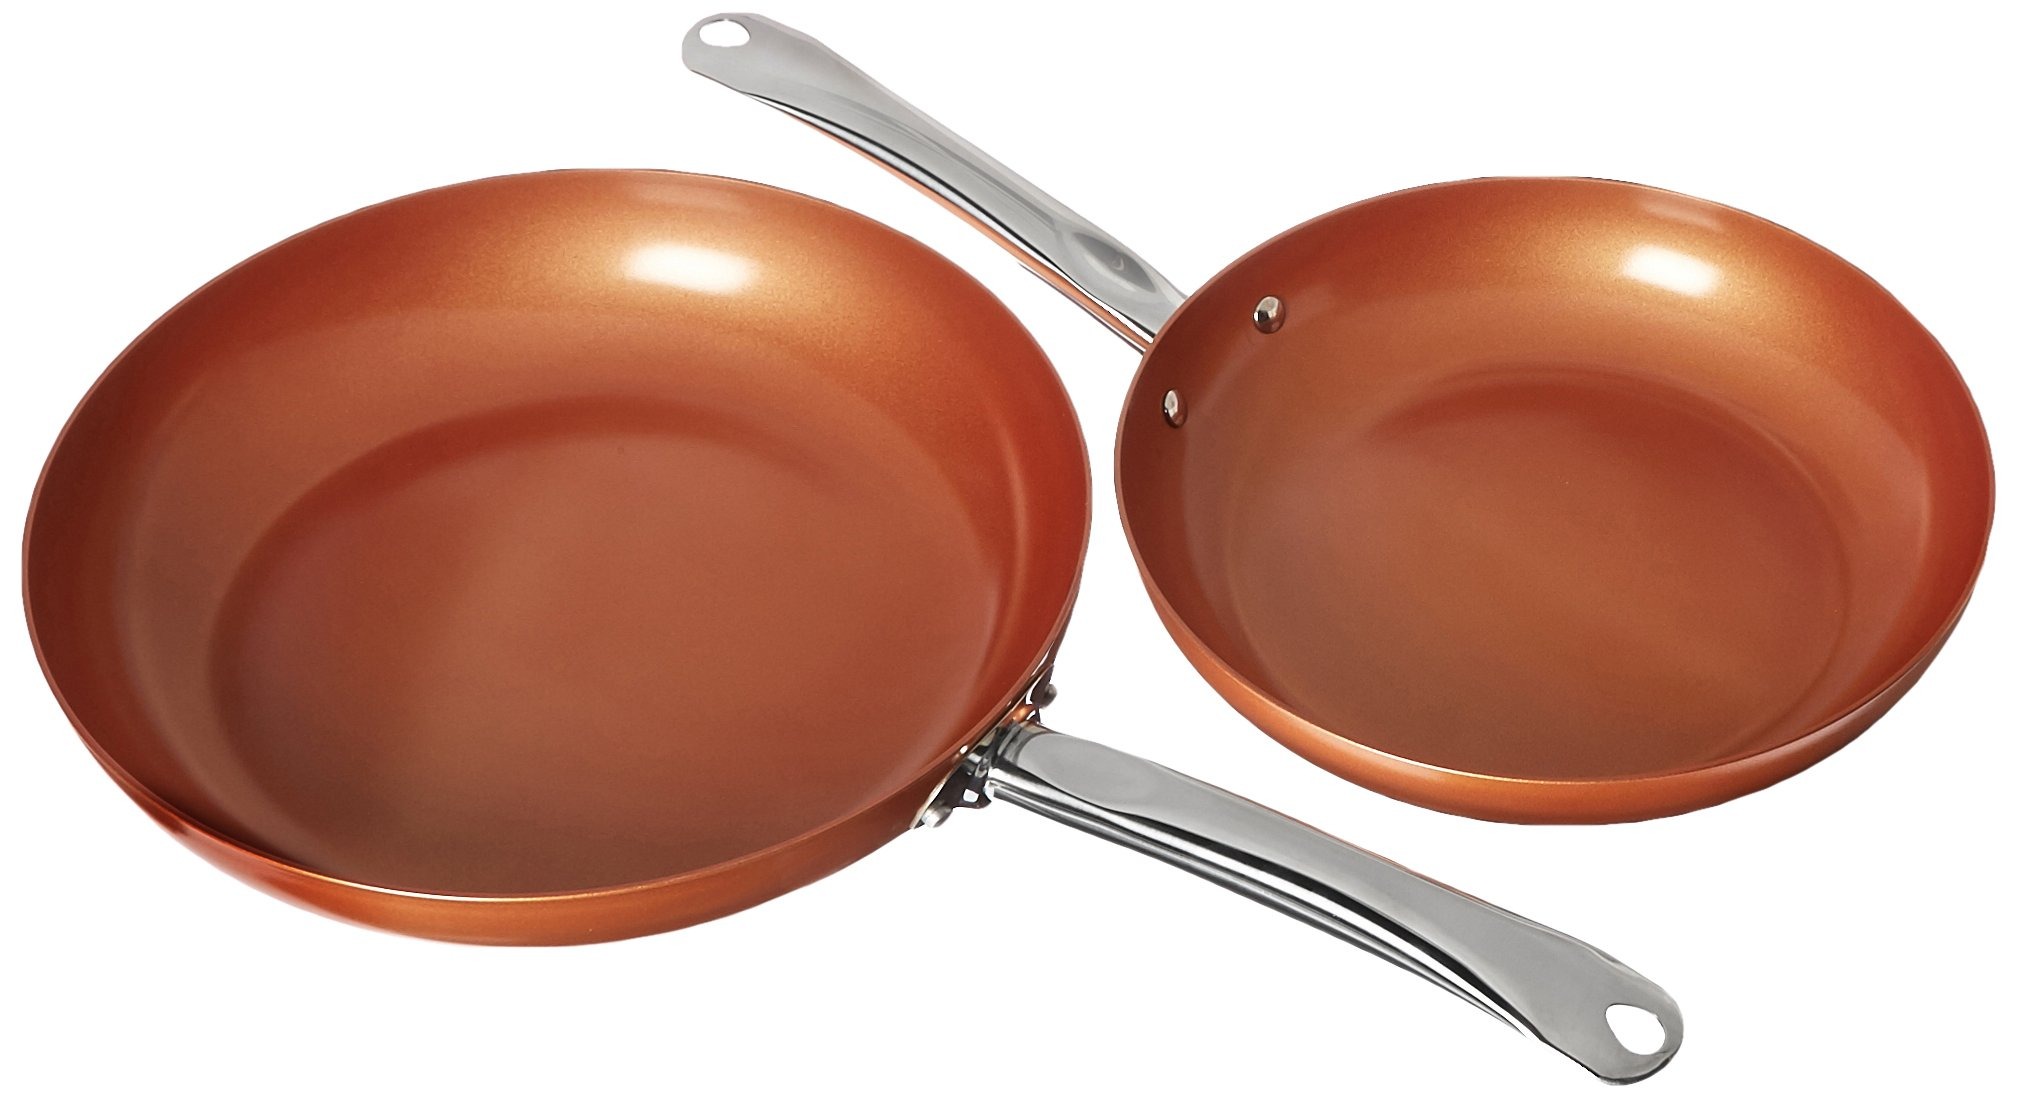 Copper Chef Round Pan- 10 and 12 Inch 2 Pack by Copper Chef (Image #1)